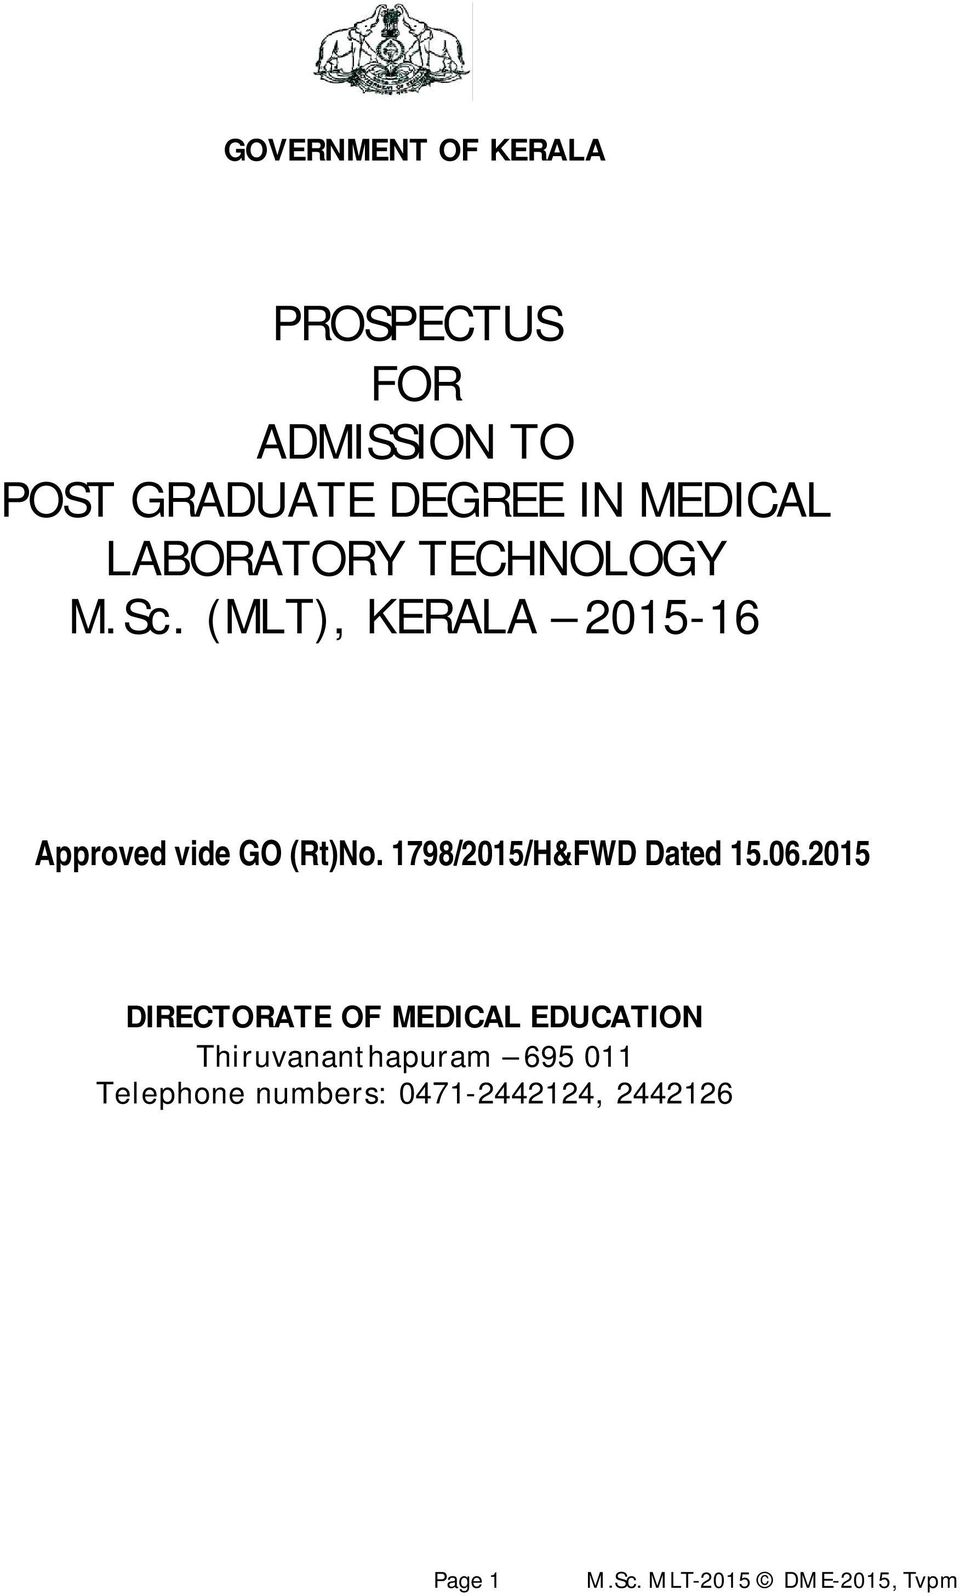 Prospectus For Admission To Post Graduate Degree In Medical